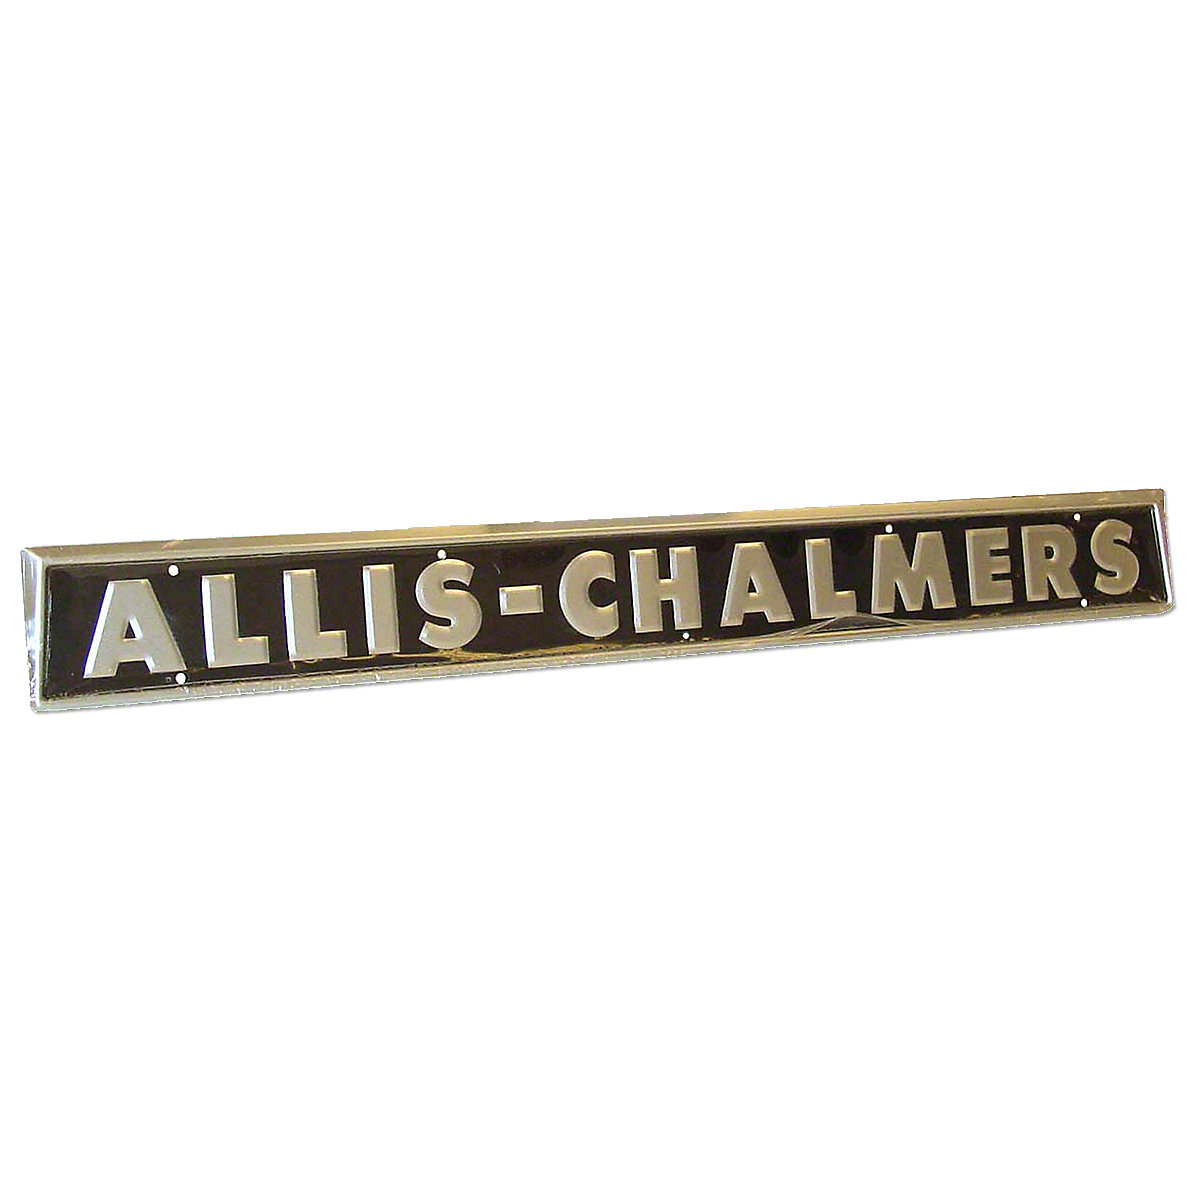 Side Emblem For Allis Chalmers: D10, D12, D15, D17, I40, I400, I60.